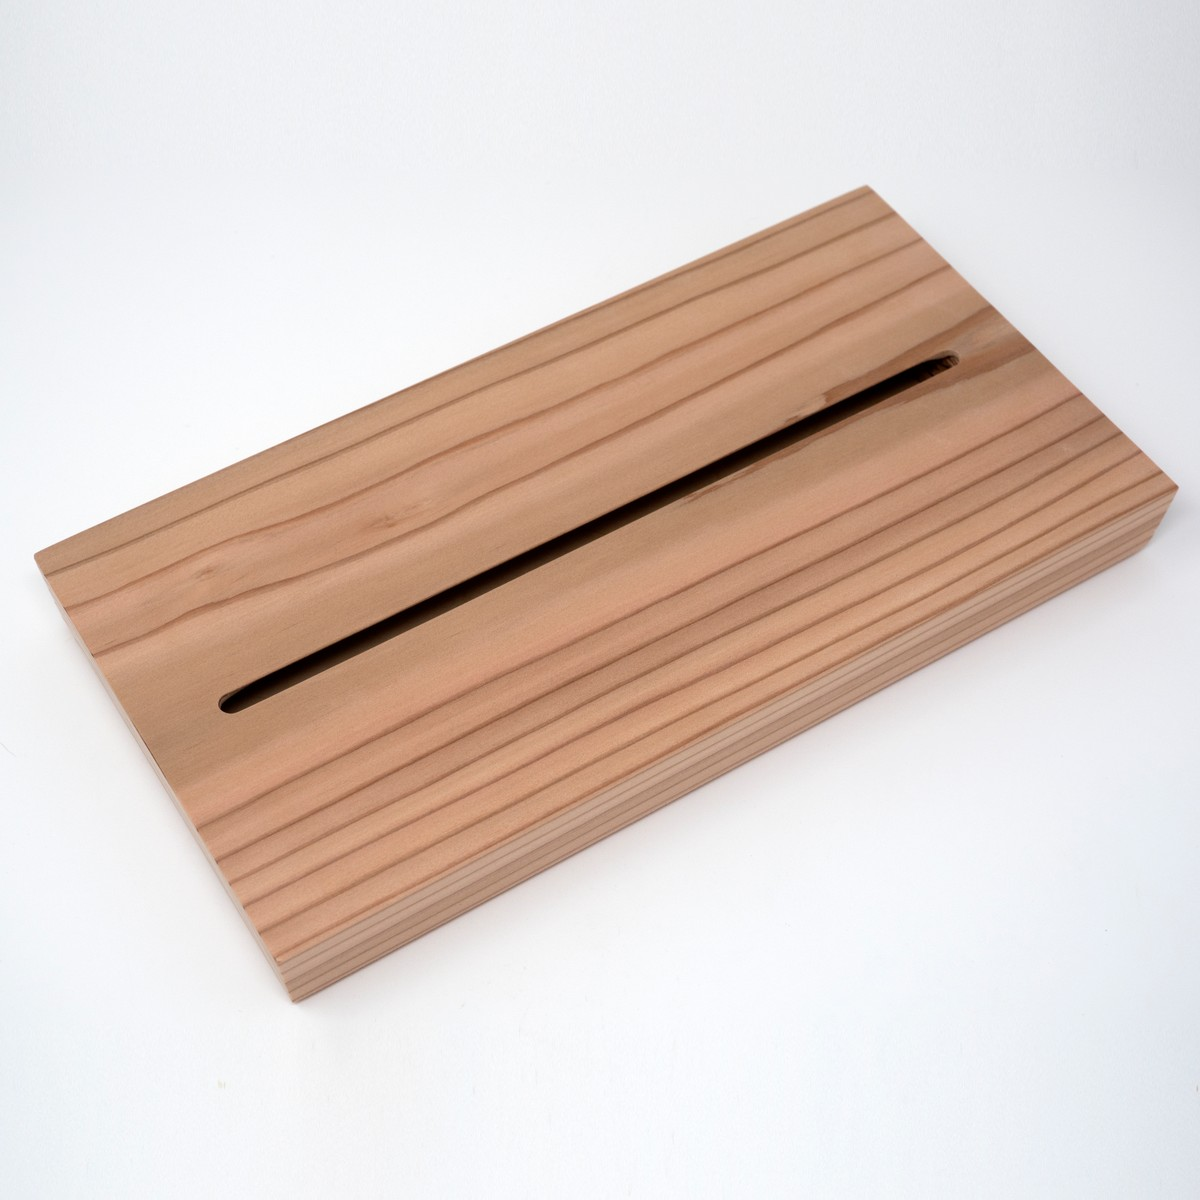 Photo of Cedar Wood Tissue Box